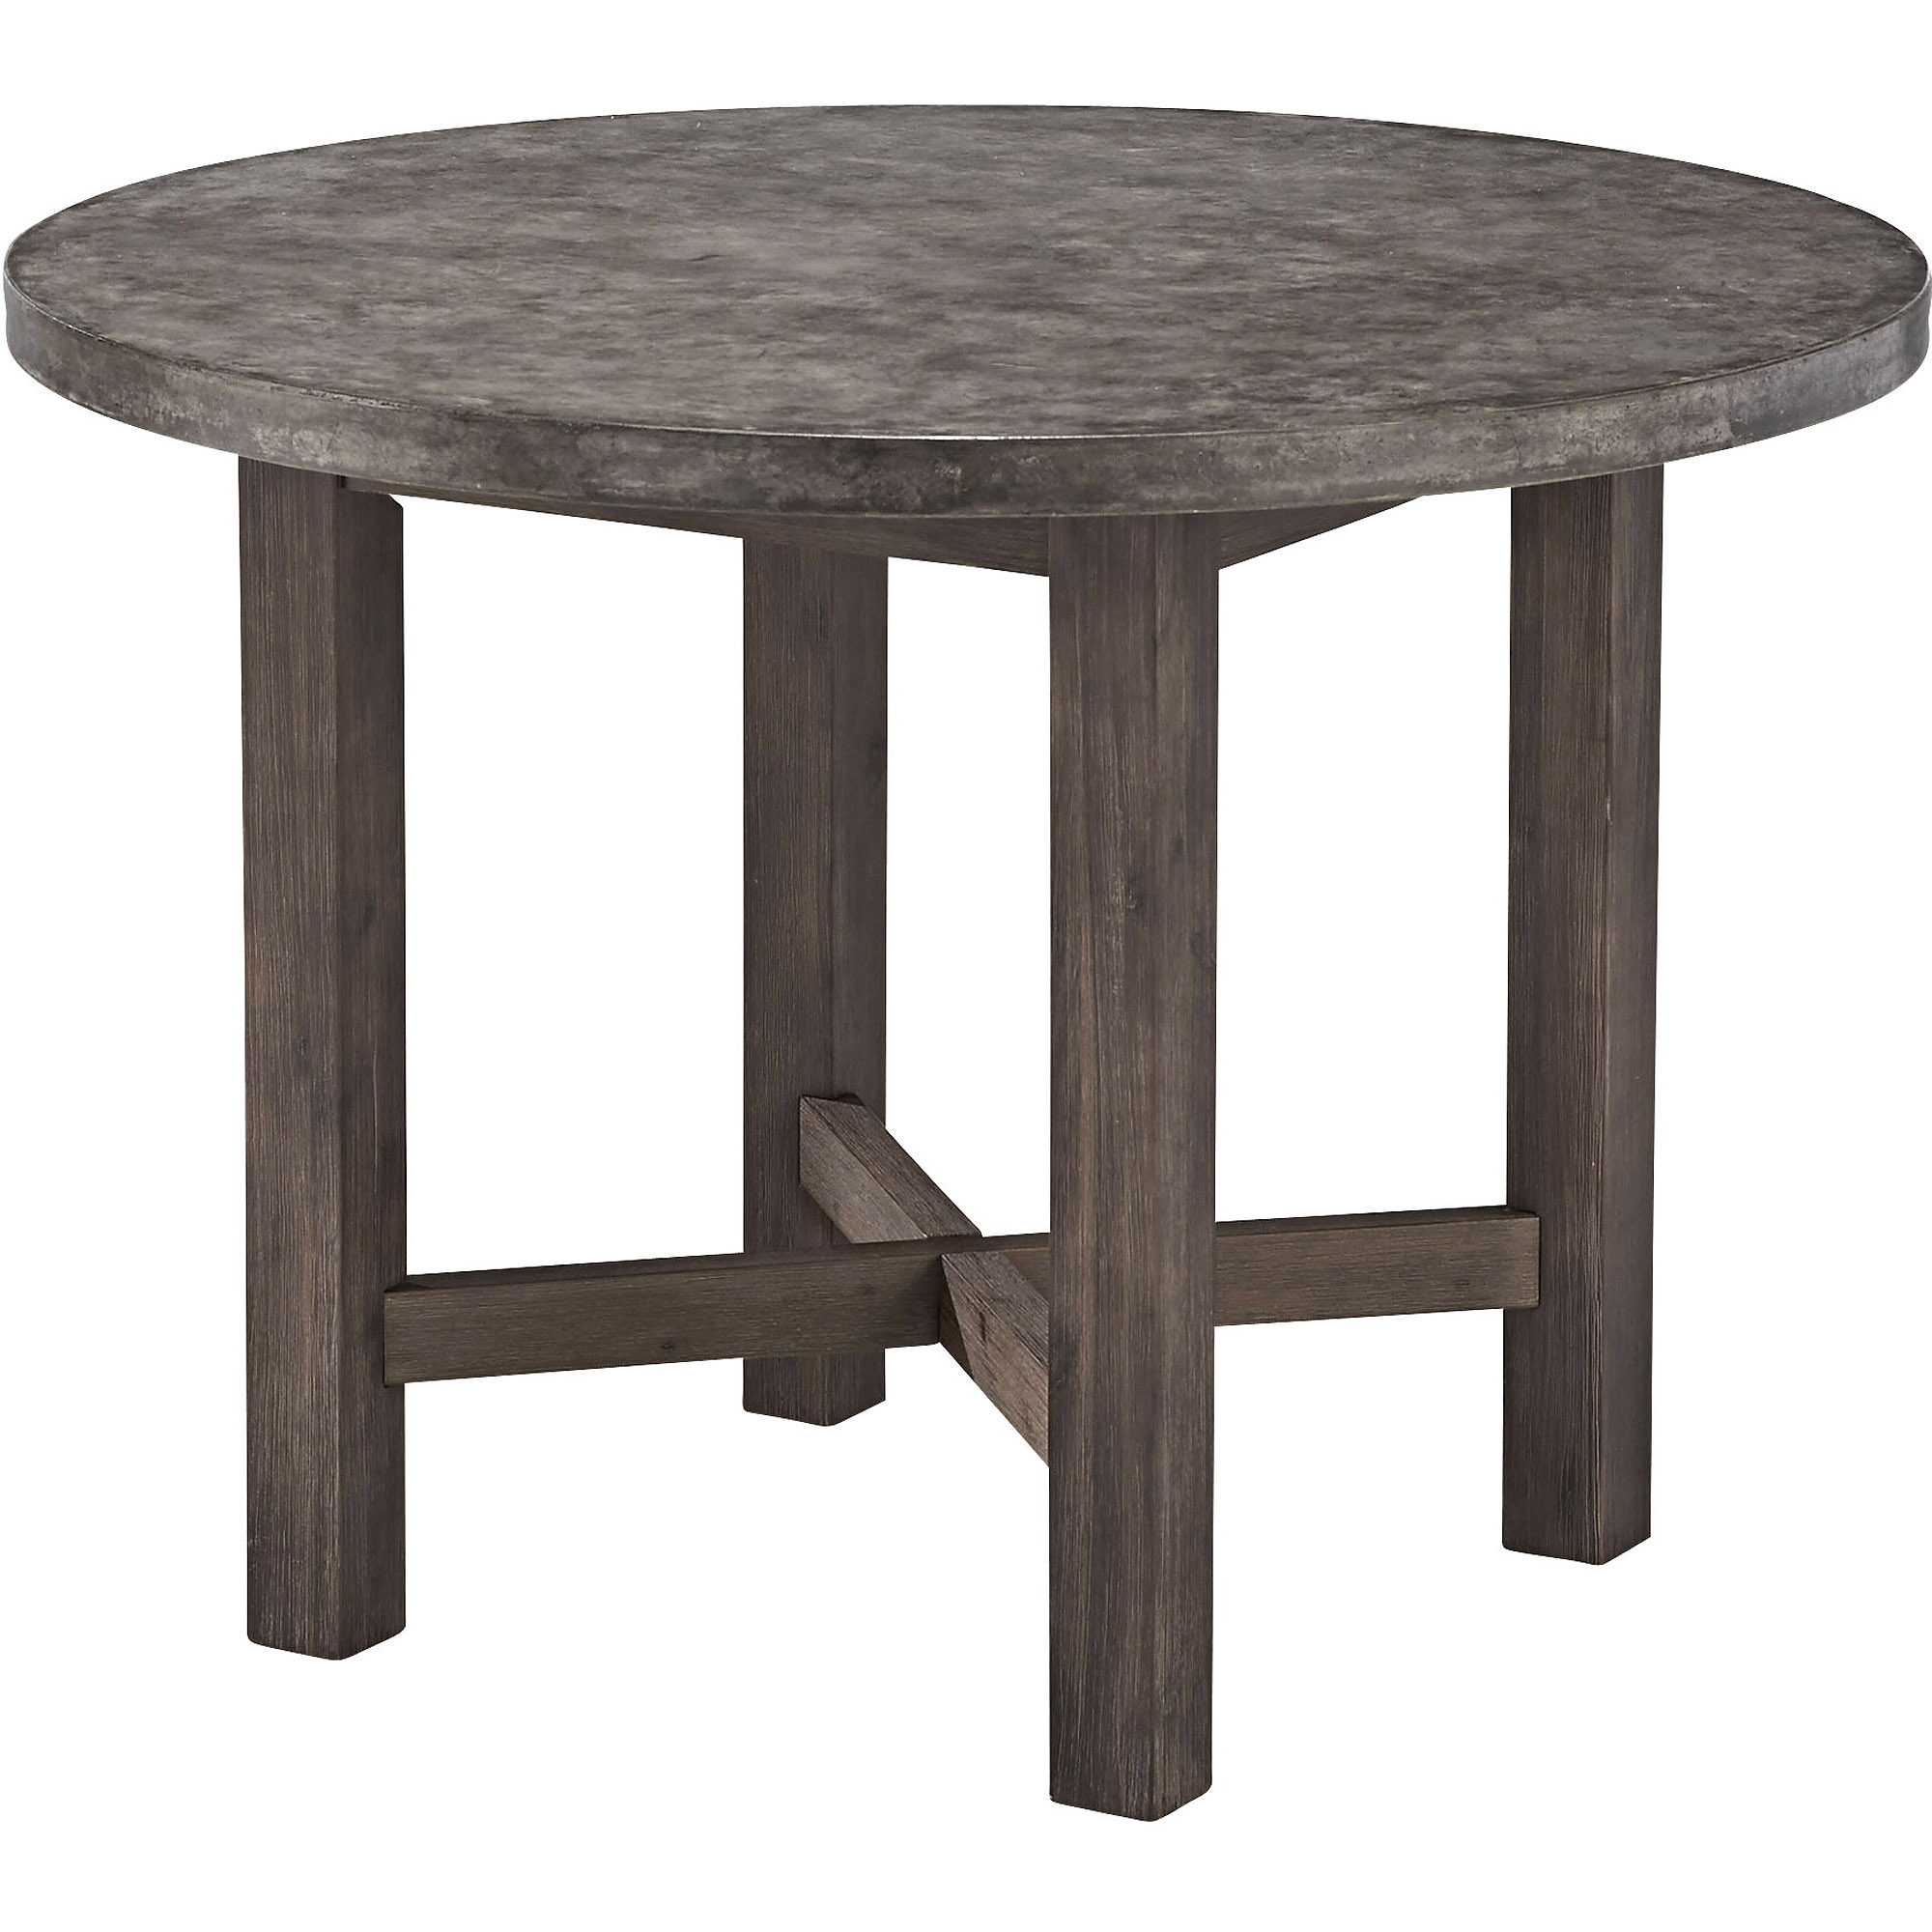 Concrete Chic Round Dining Table